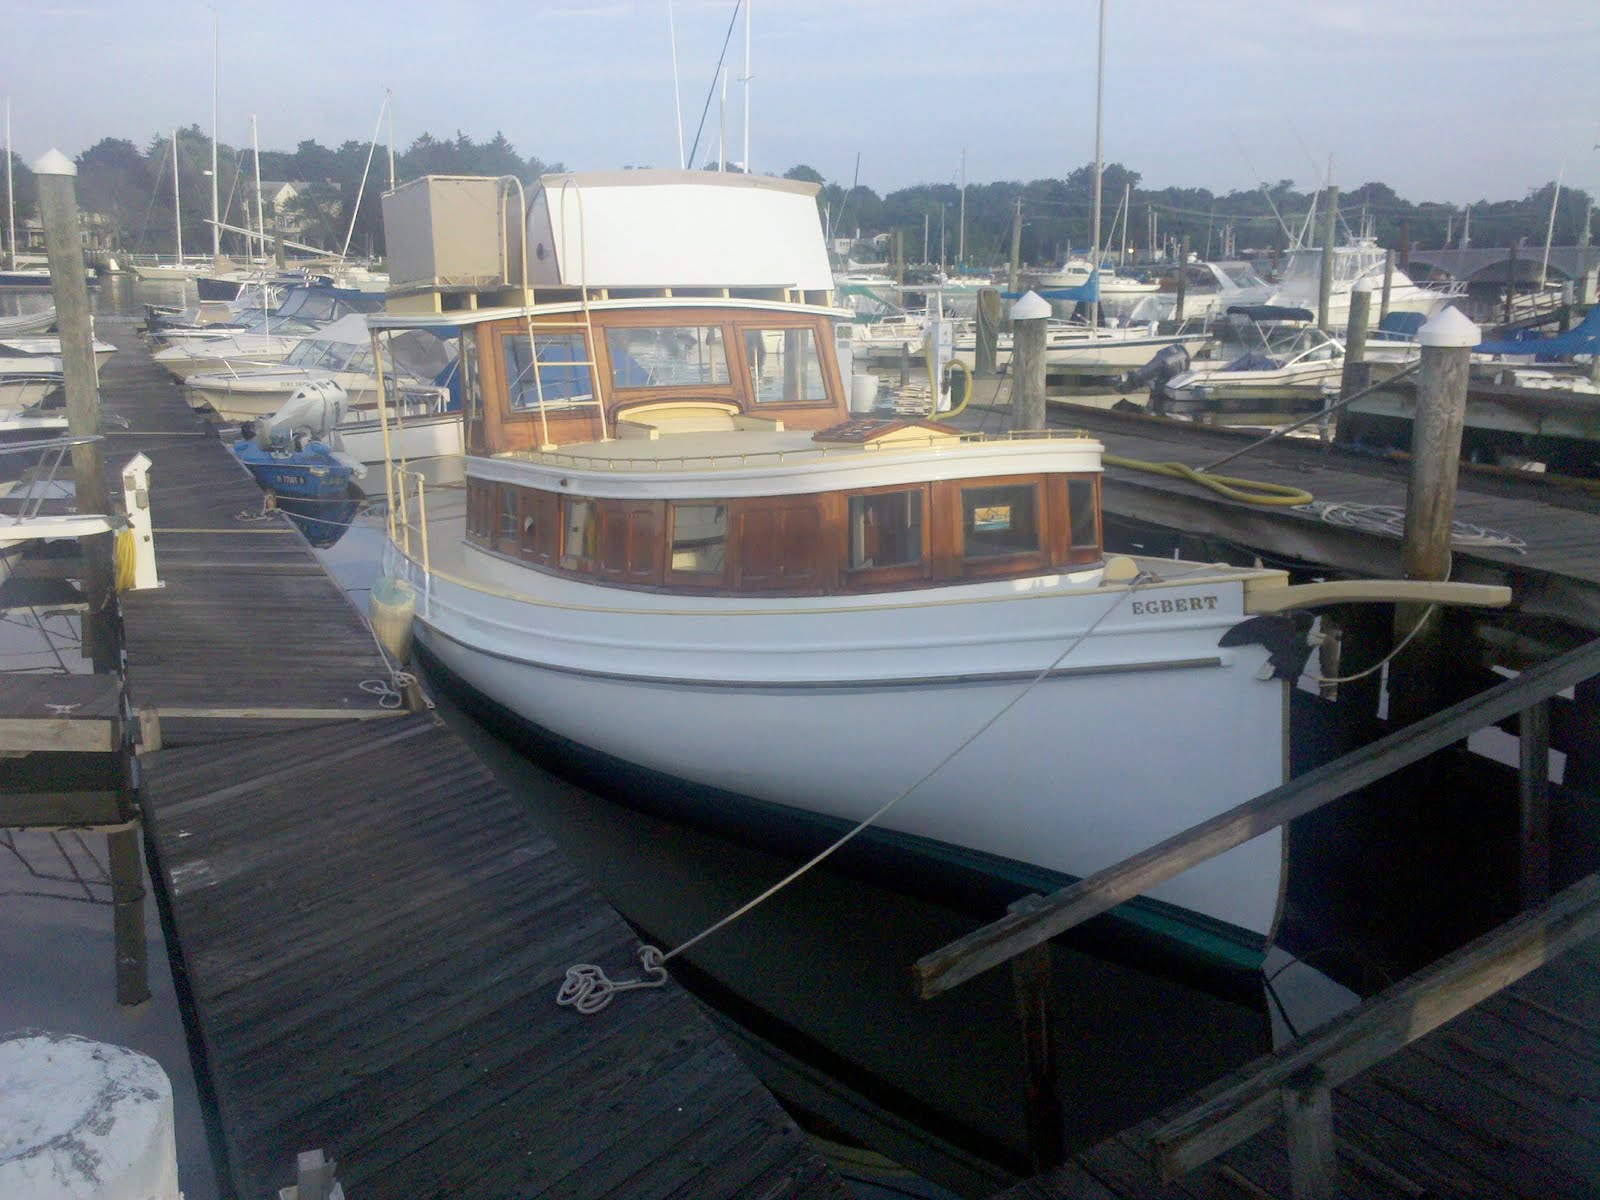 She is an antique yacht built in 1885 in the style of a traditional oyster ...